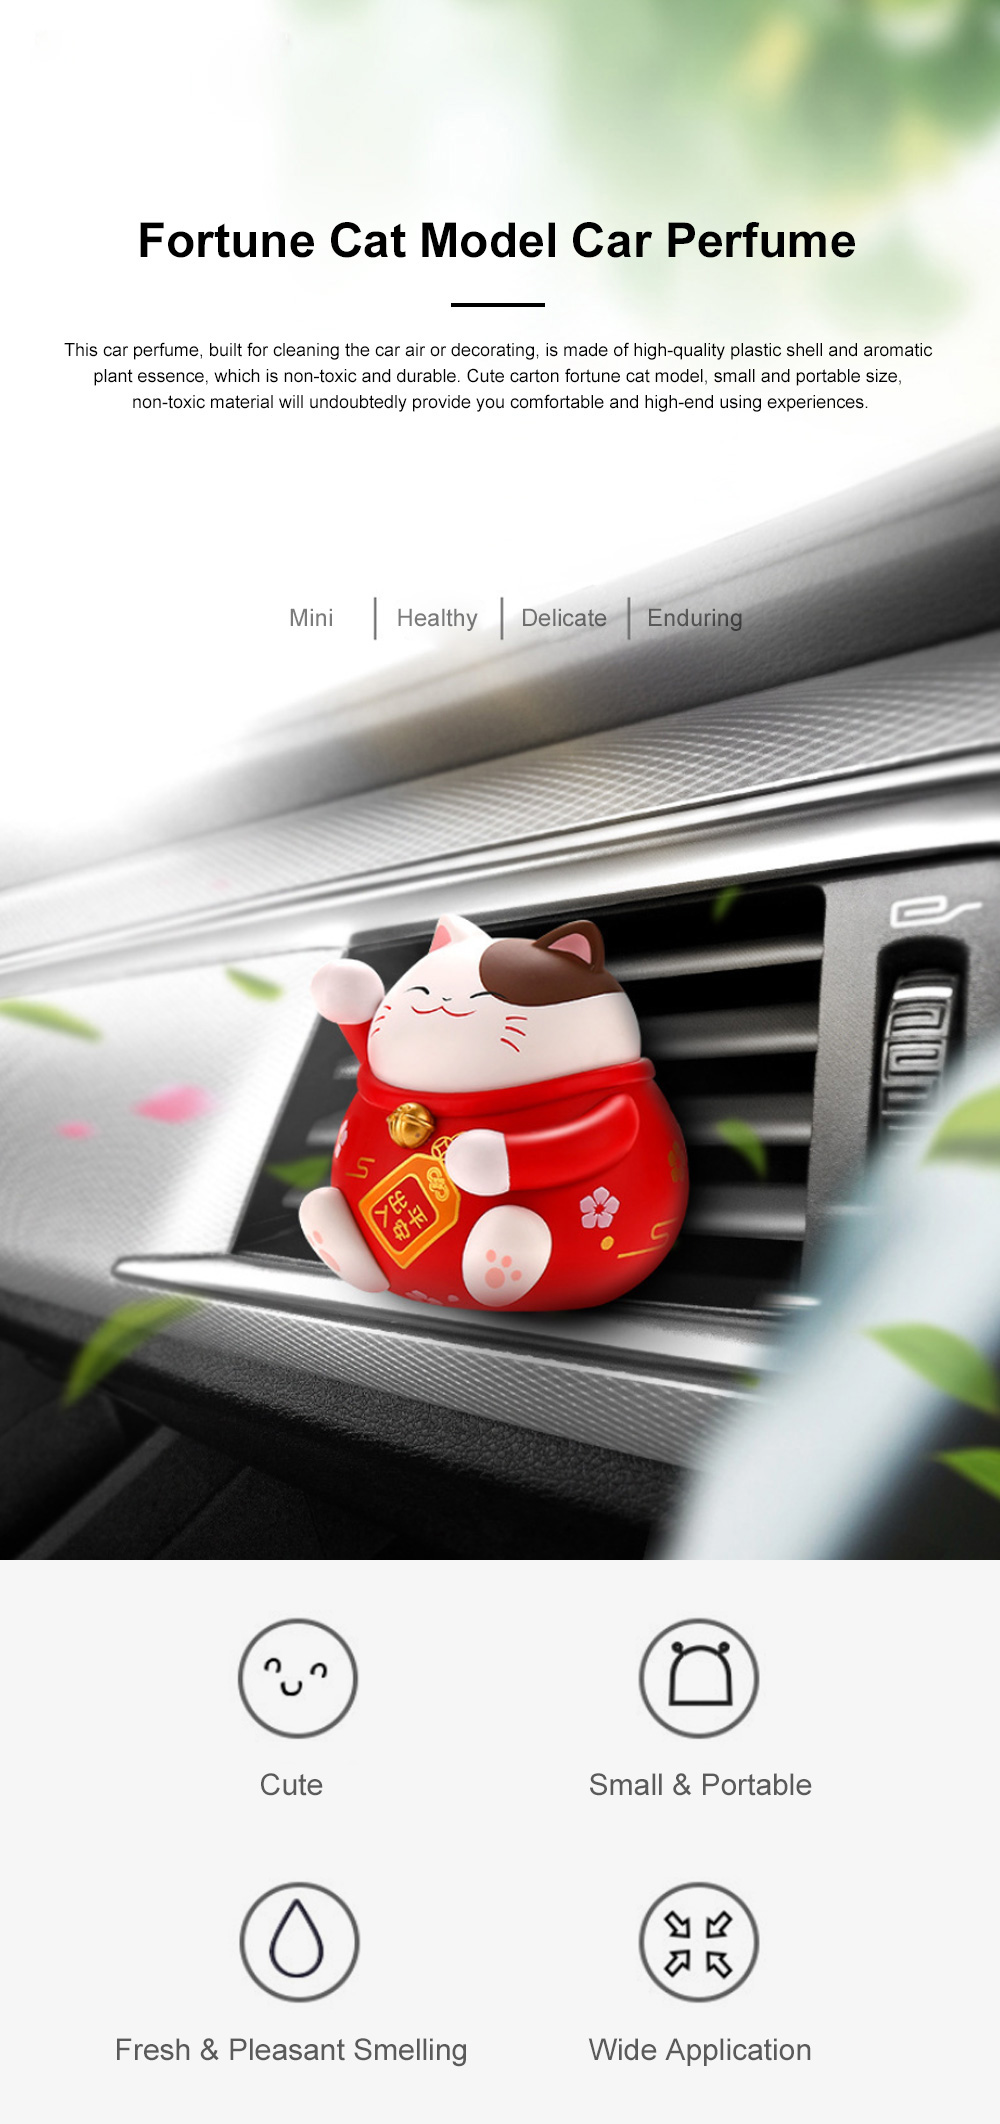 Cute Caron Fortune Cat Model Enduring Light Fragrance Car Perfume Aromatherapy Solid Perfume Ornament 0